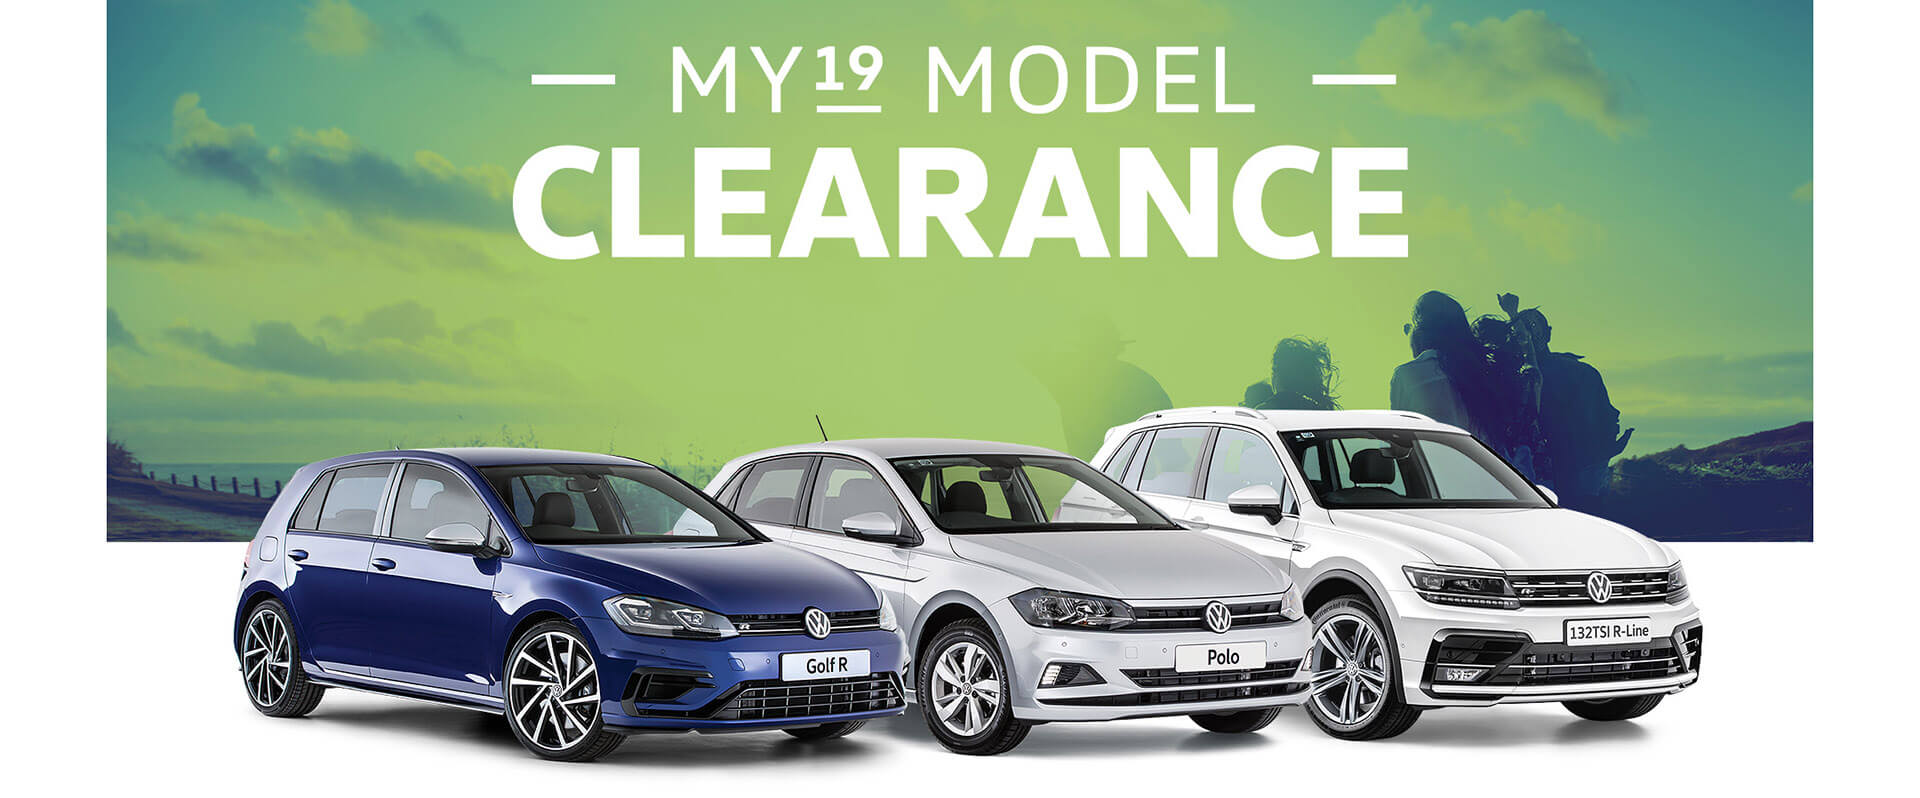 Volkswagen EOFY Offer